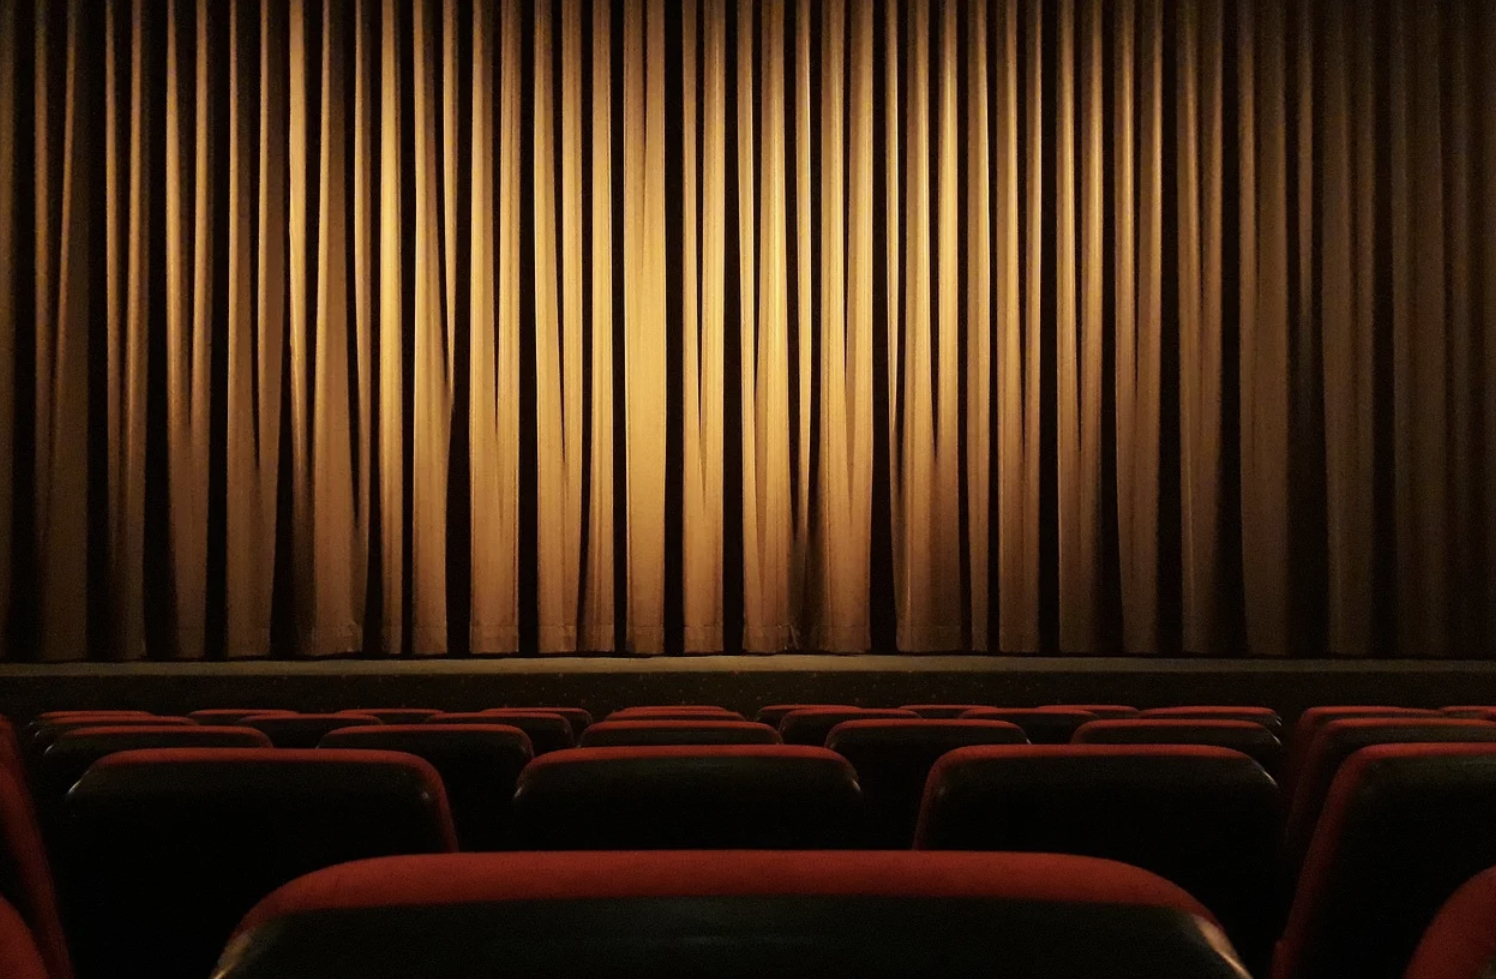 https://pixabay.com/photos/cinema-curtain-theater-film-4609877/